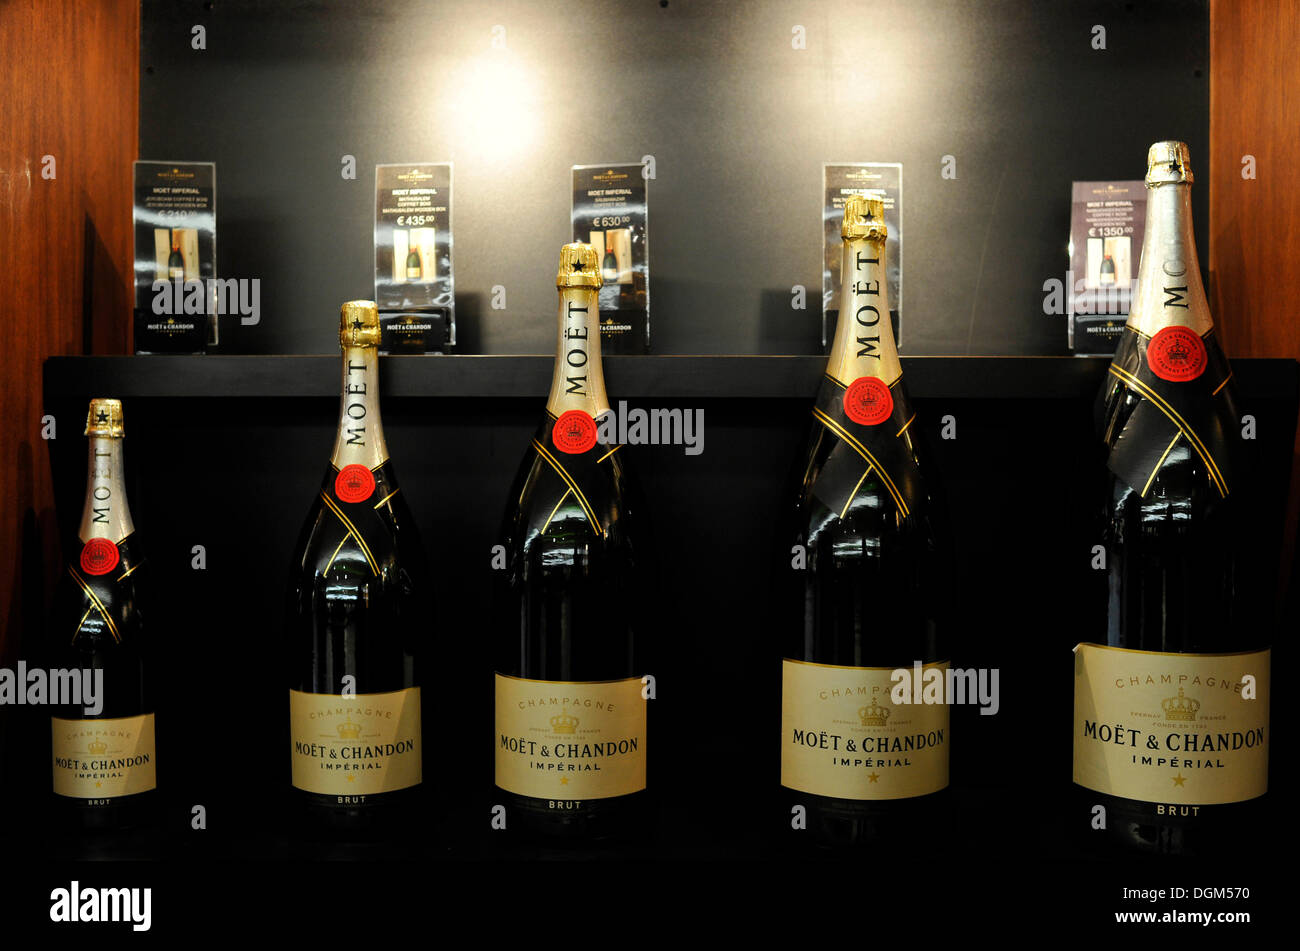 e4b7a3ba0237 Champagne bottles in various sizes